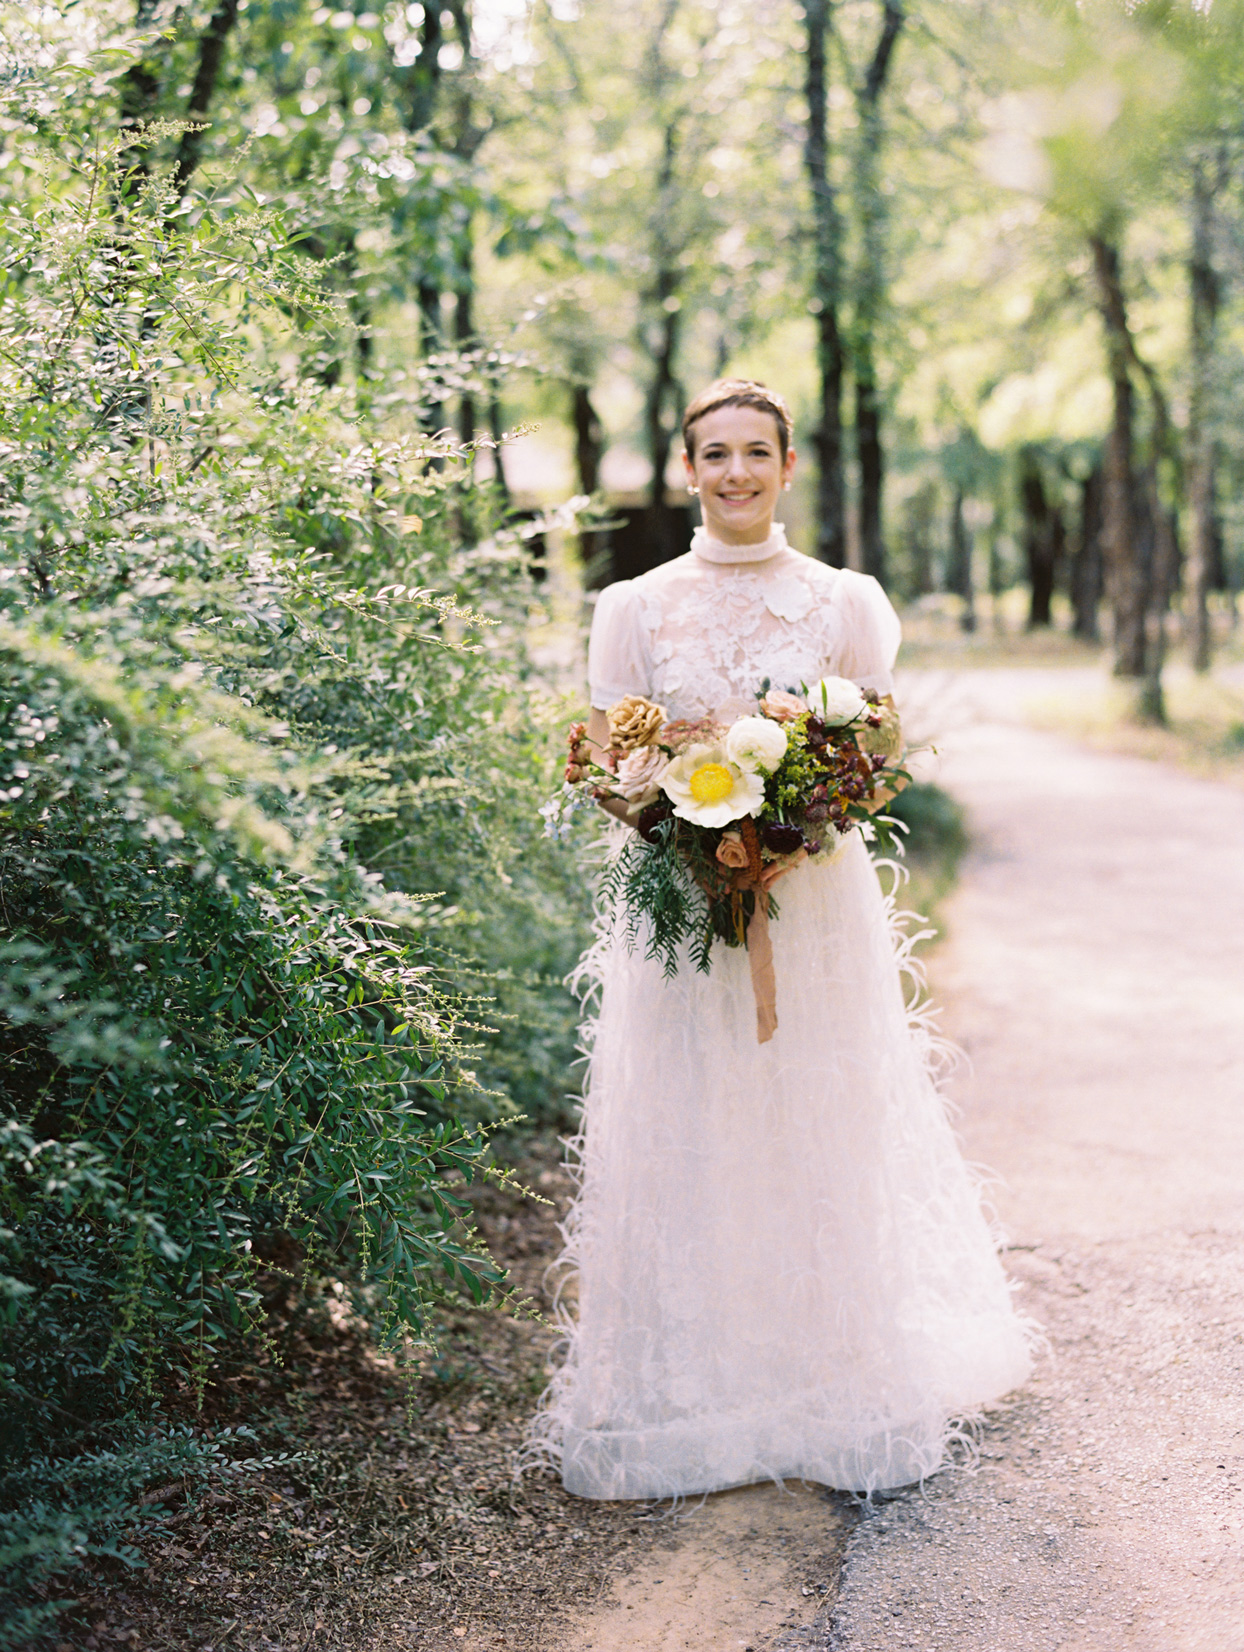 Bride in sheer, lacy gown with a high neck and puffed sleeves, and a feather-covered skirt